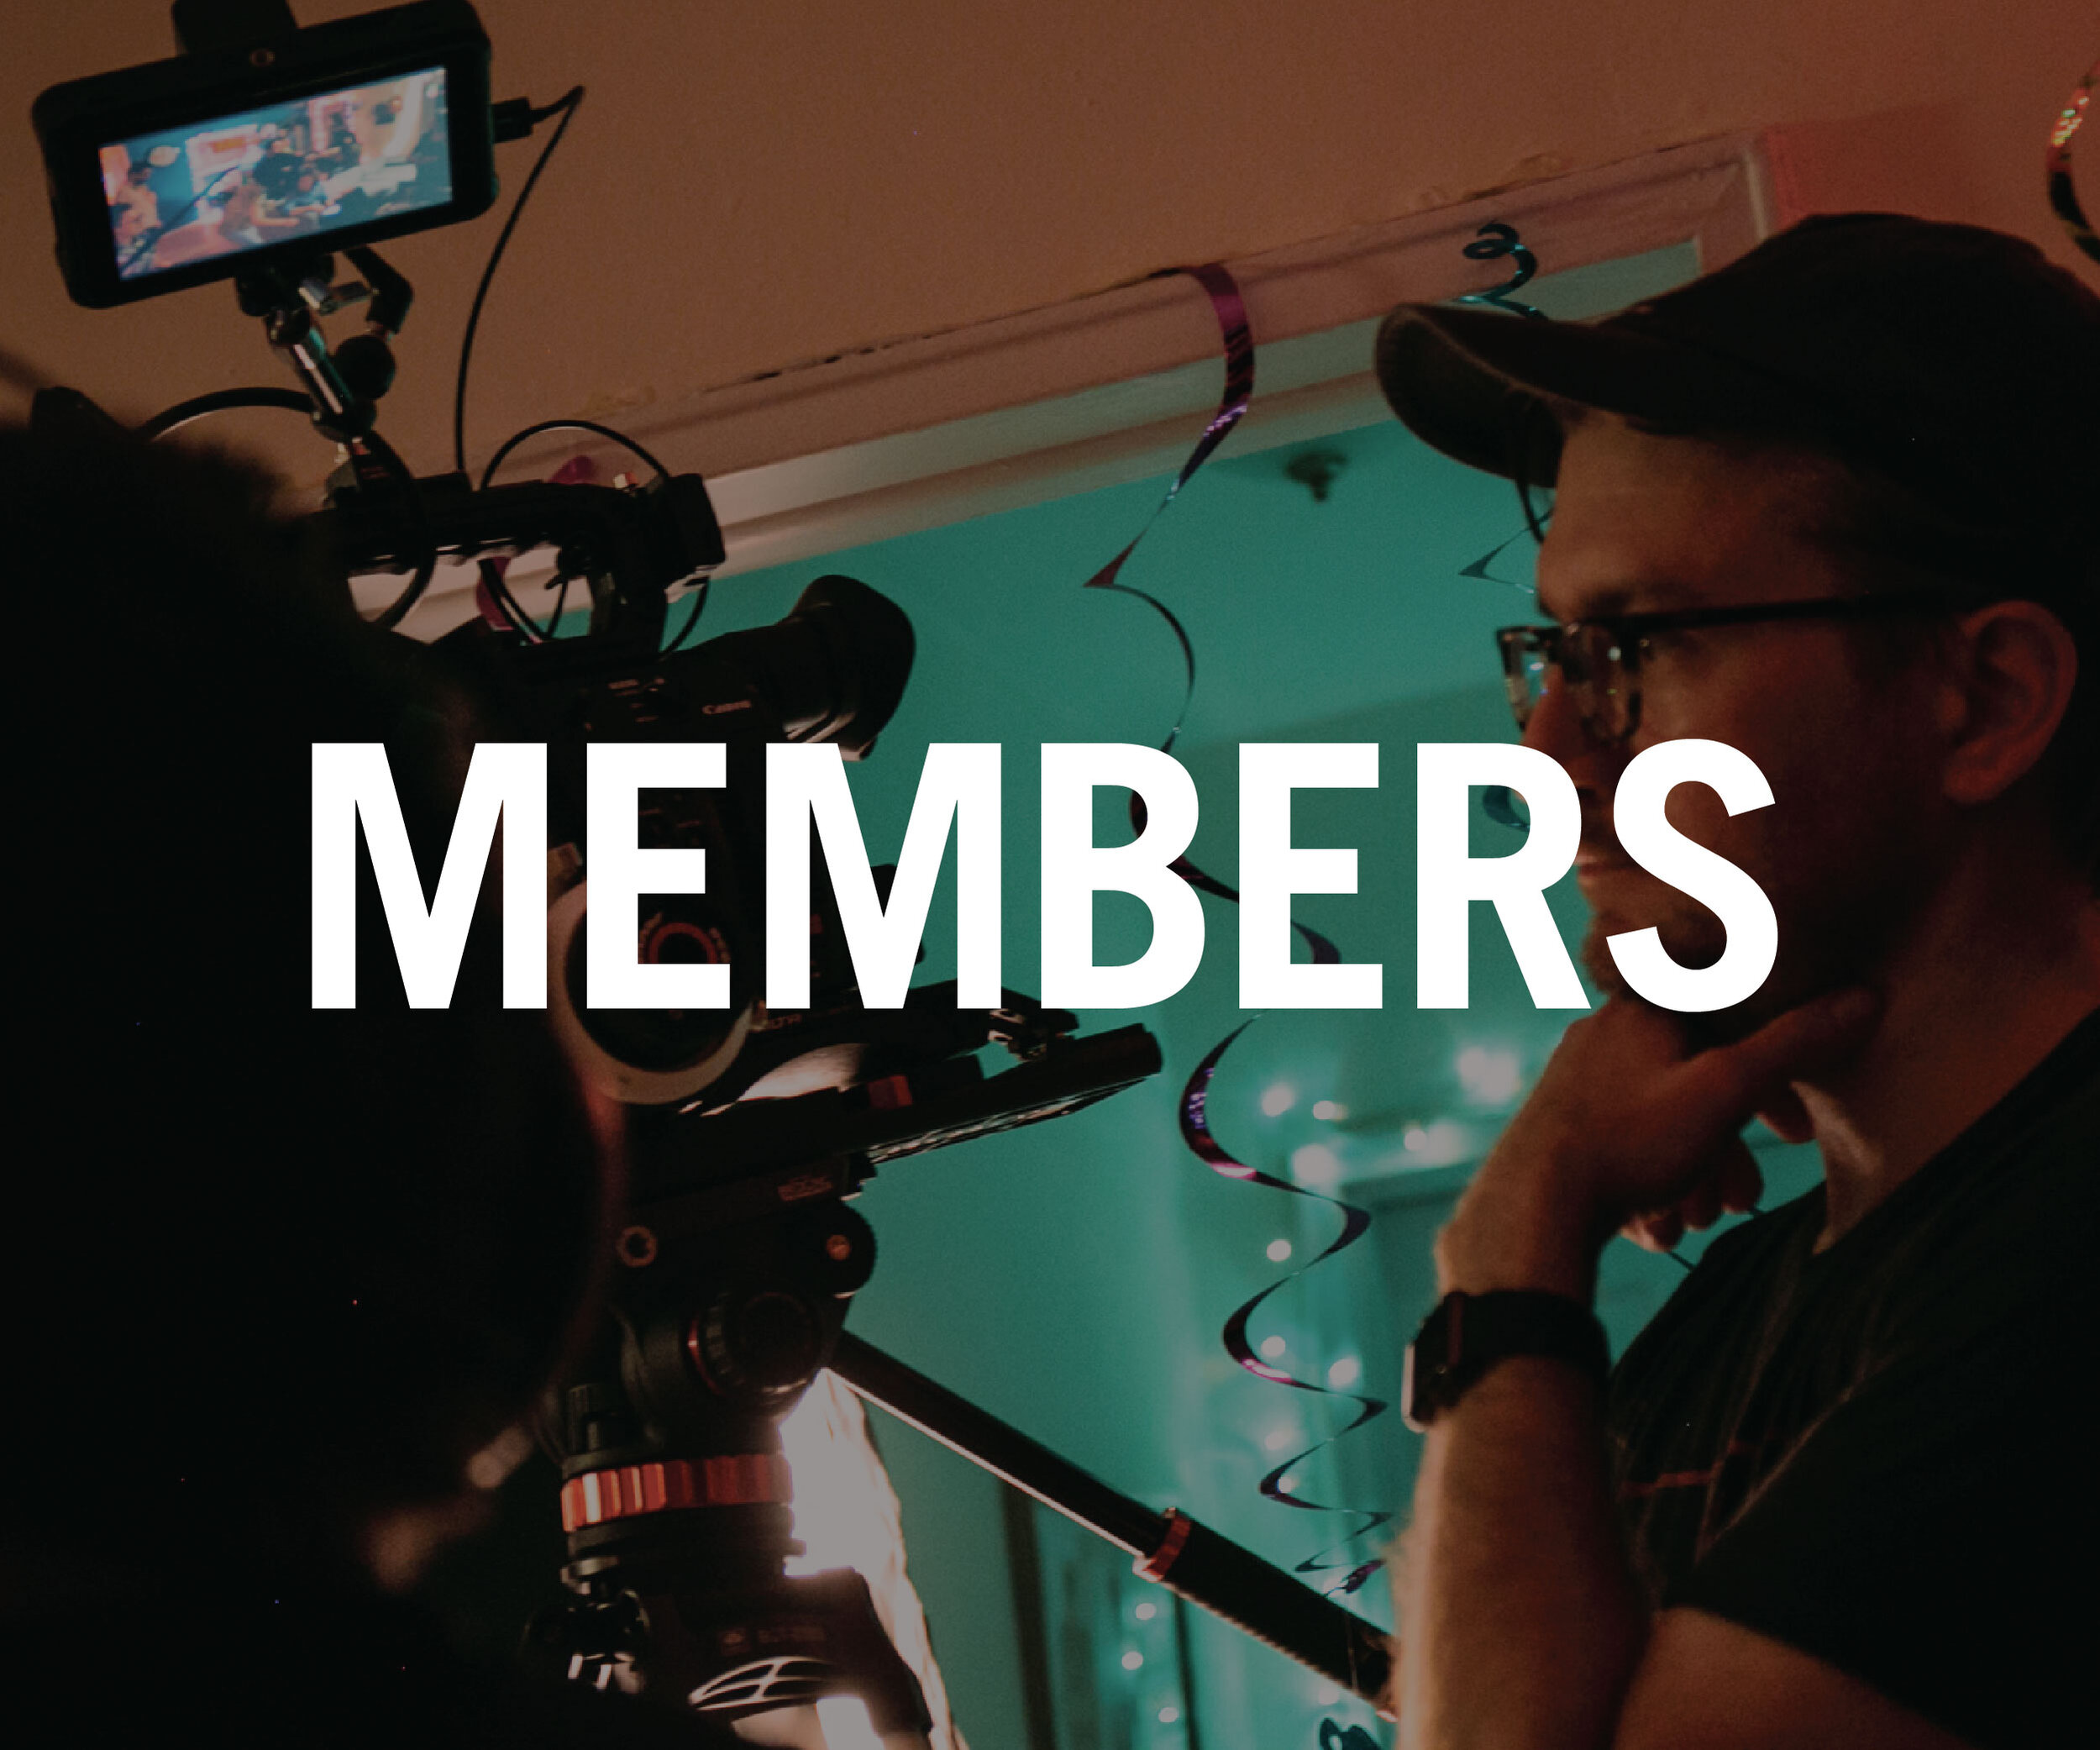 Interested in becoming a member? Click here to learn more.